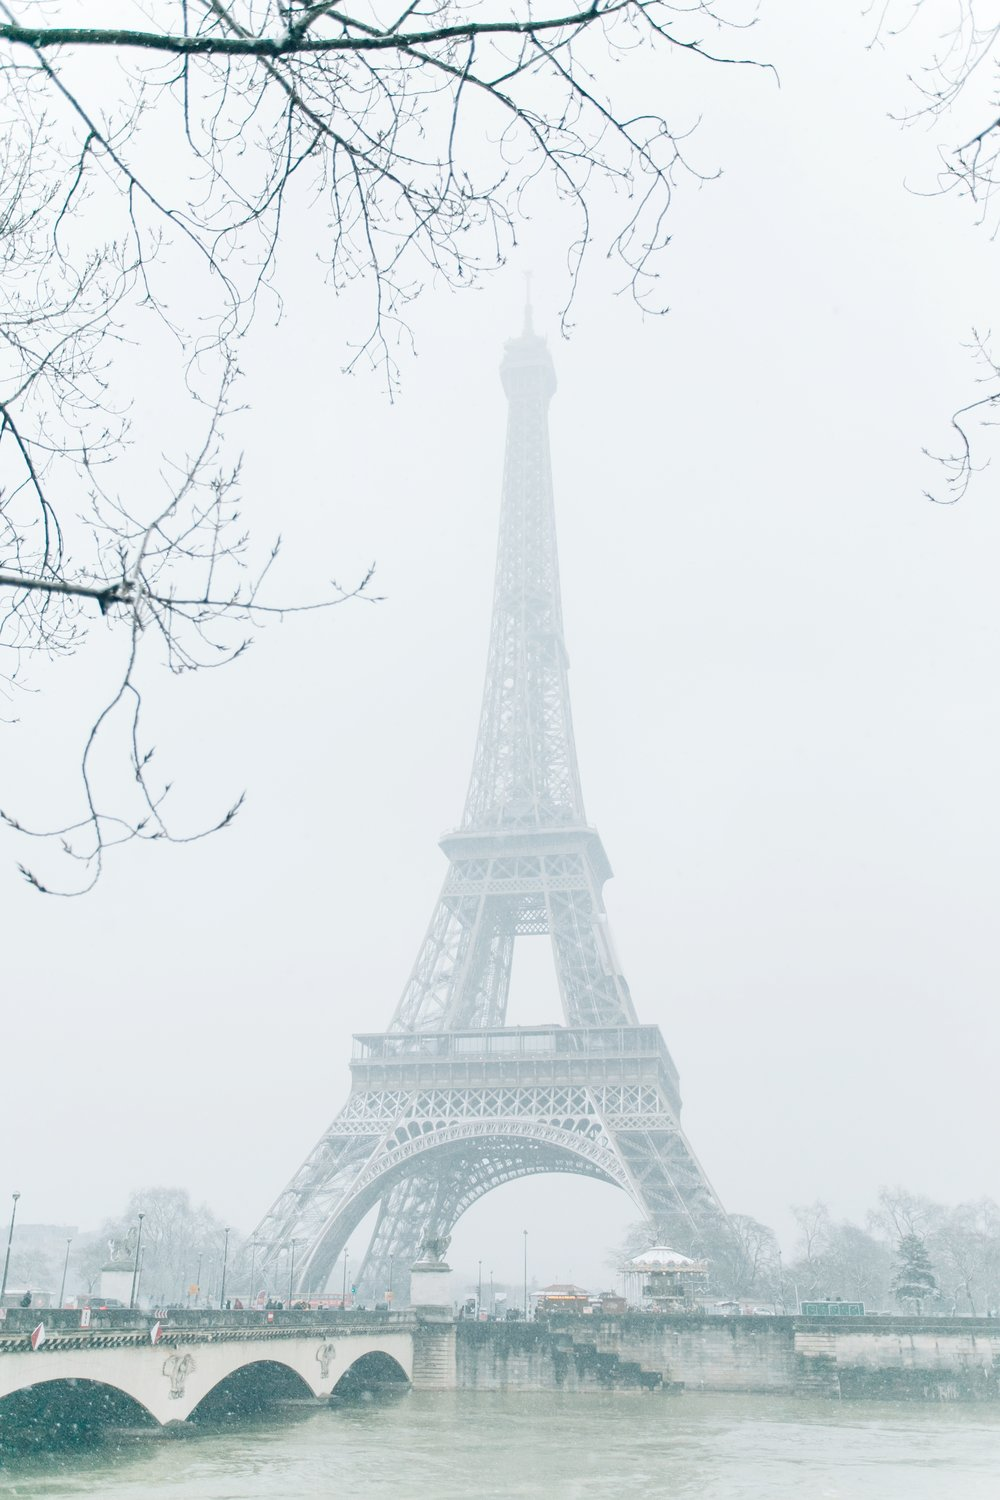 Paris in the Winter by Haarkon. The Eiffel Tower in the snow.